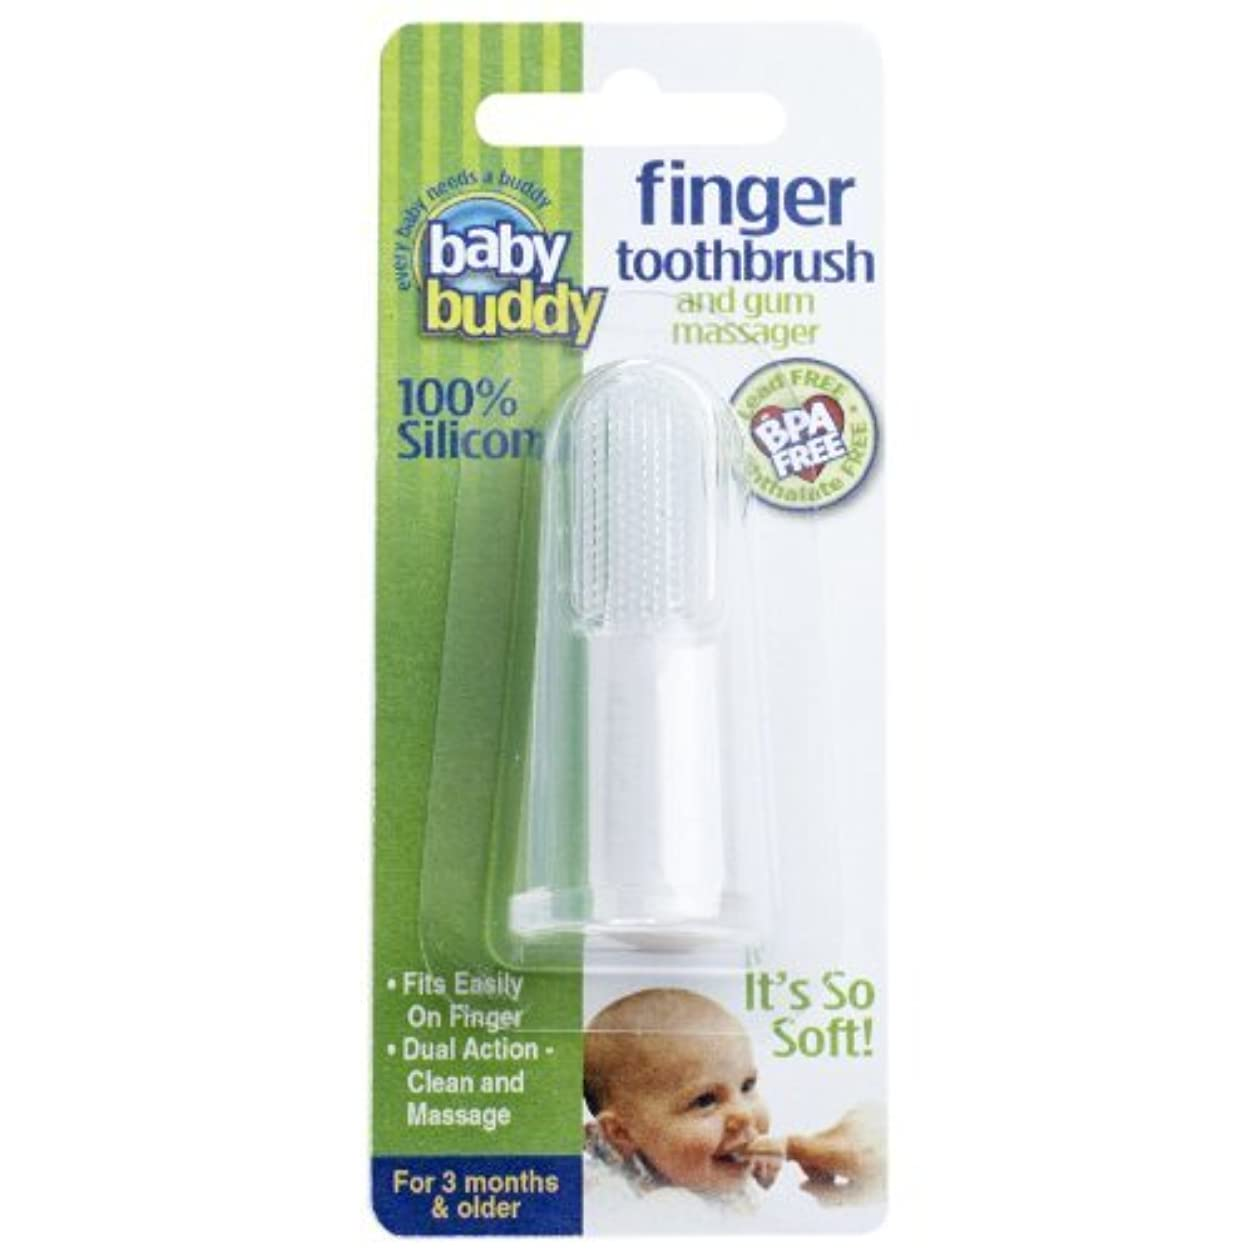 Baby Buddy Silicone Finger Toothbrush, Clear by Baby Buddy [並行輸入品]